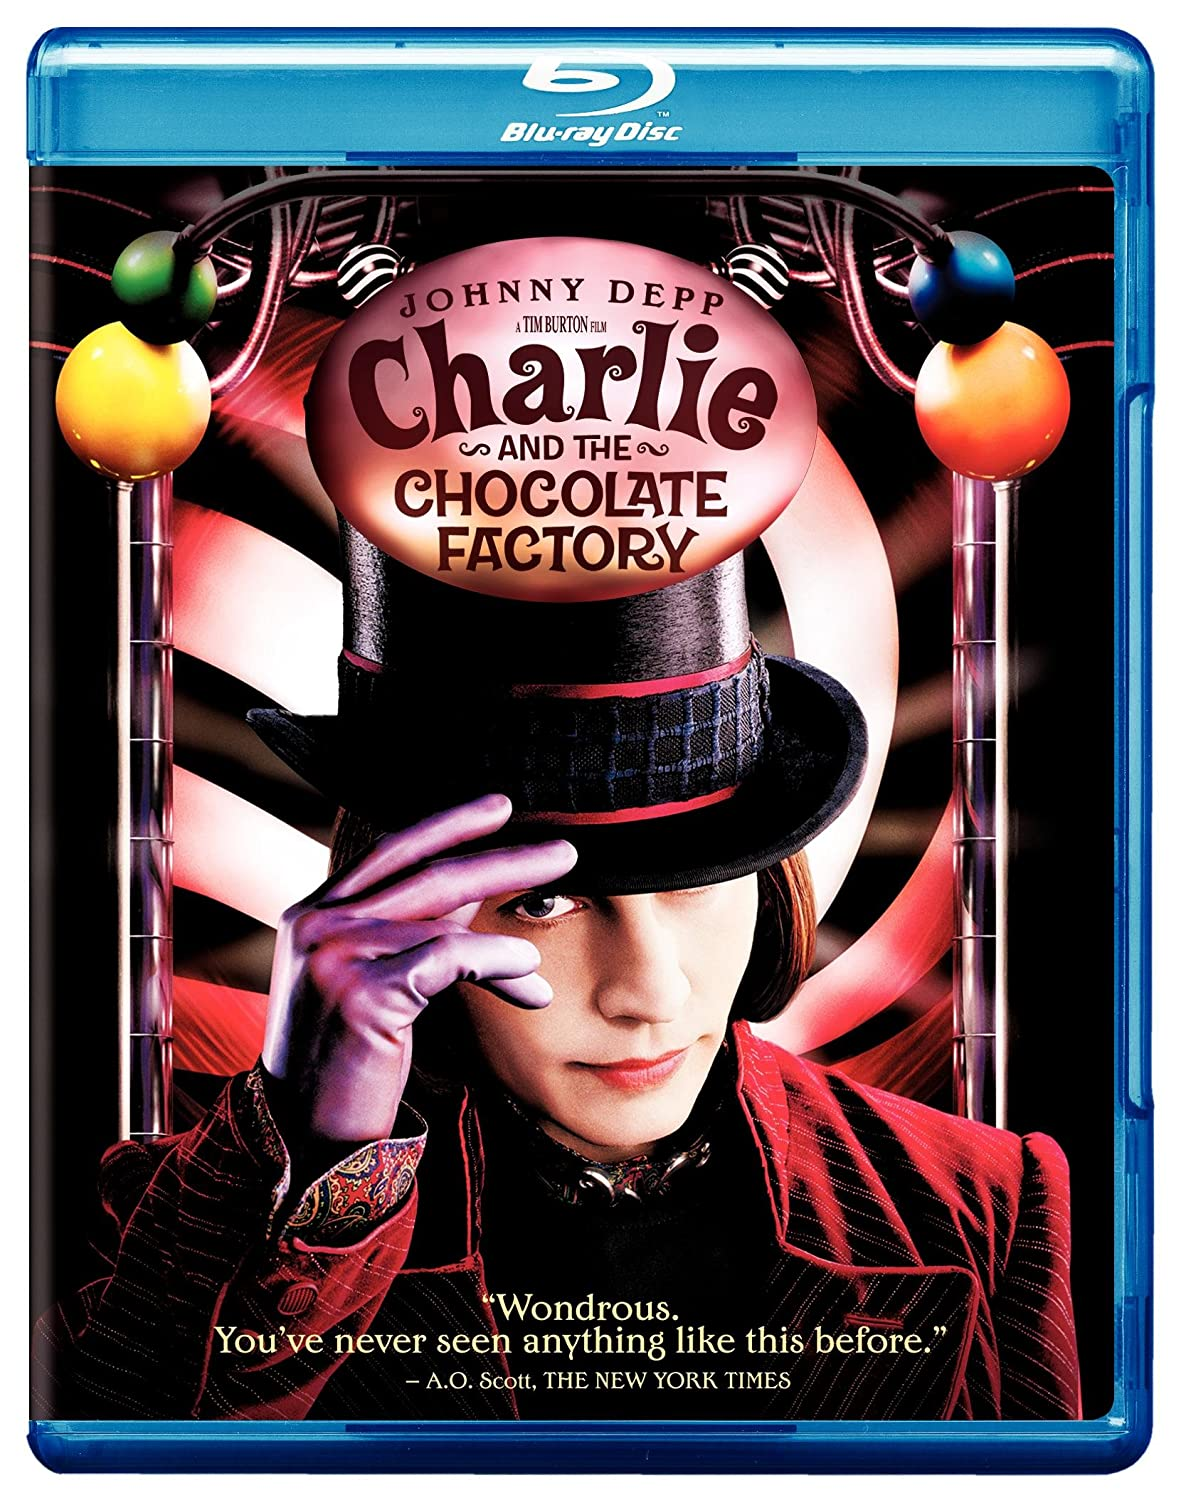 Amazon.com: Charlie and the Chocolate Factory [Blu-ray]: Johnny ...